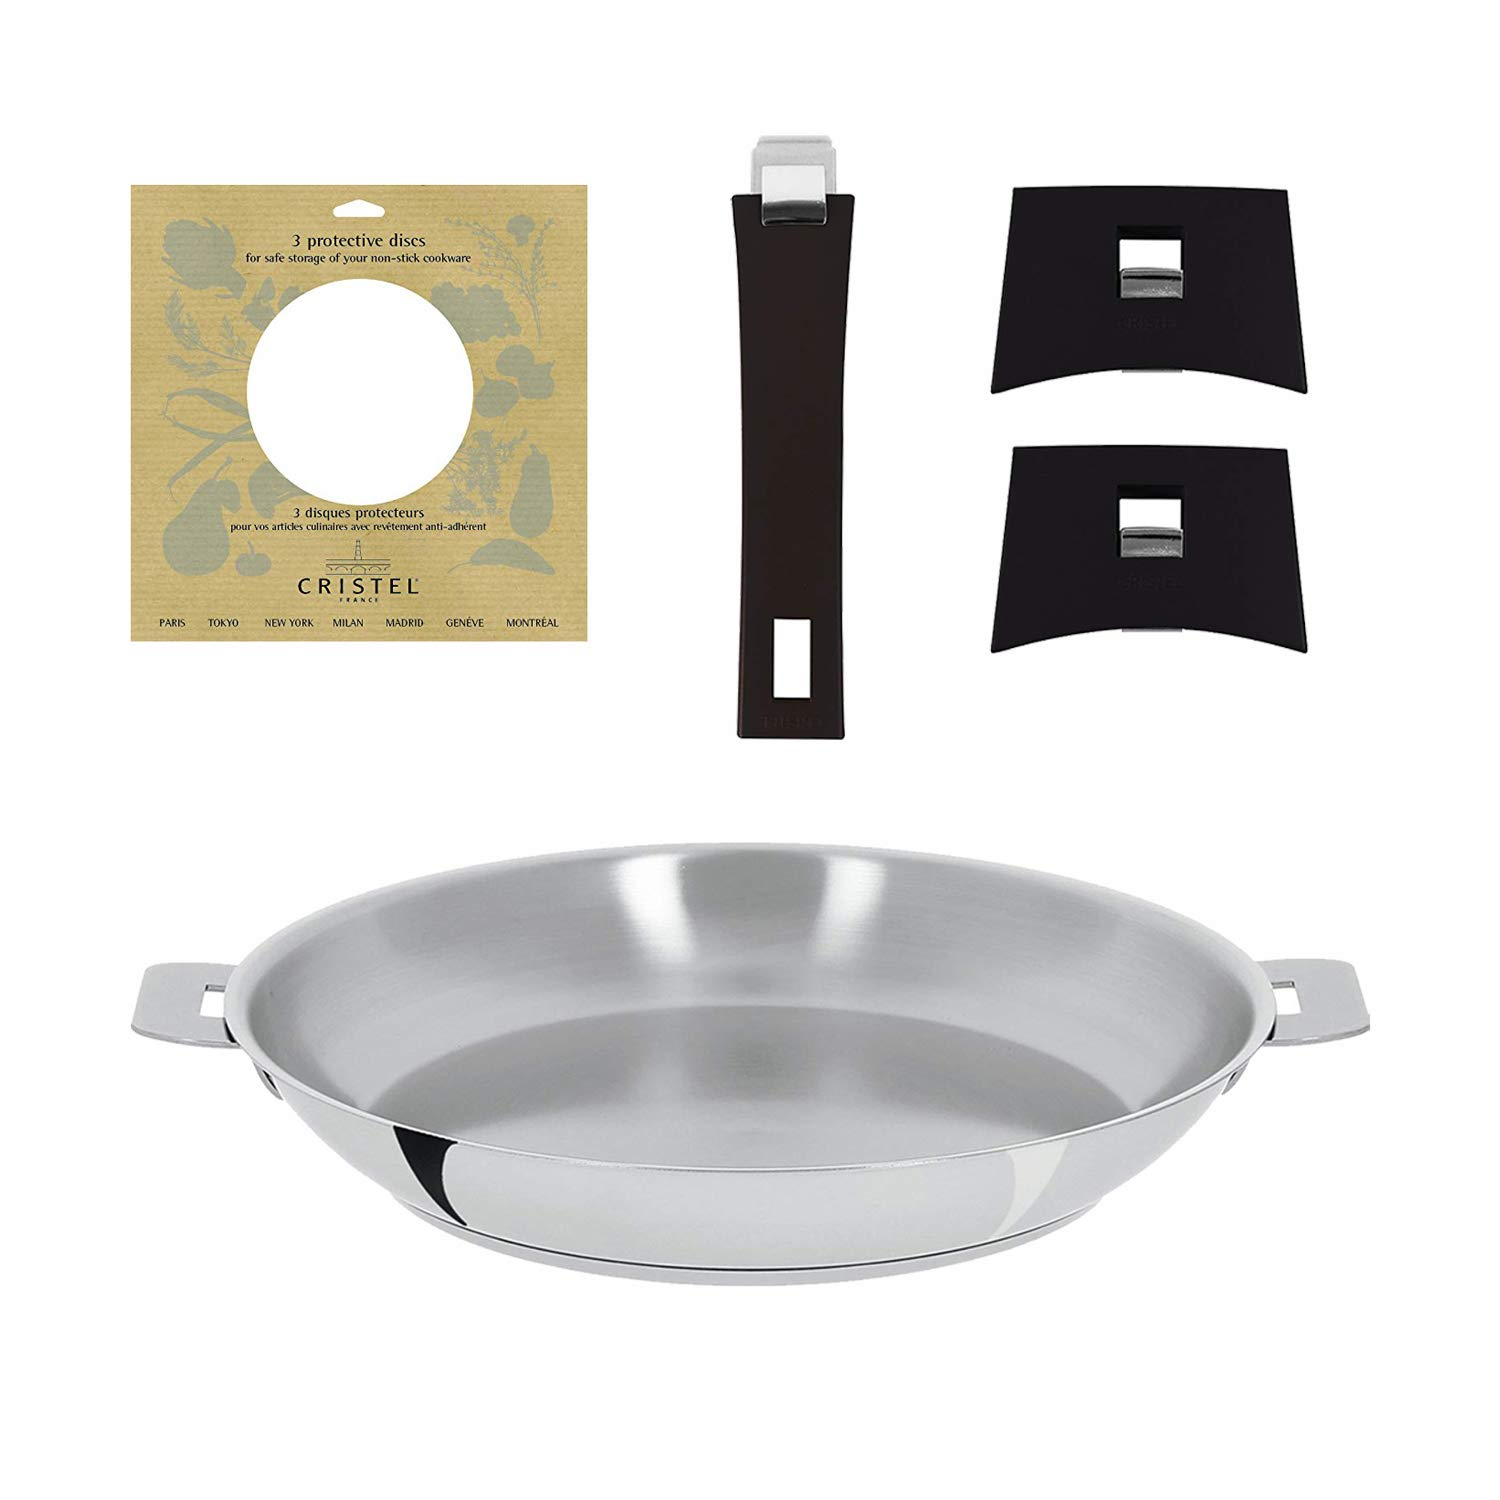 Cristel P24Q Mutine 9.5-Inch Fry Pan with Handles and Protection Pads, Silver 141[並行輸入]   B07JF94M4L